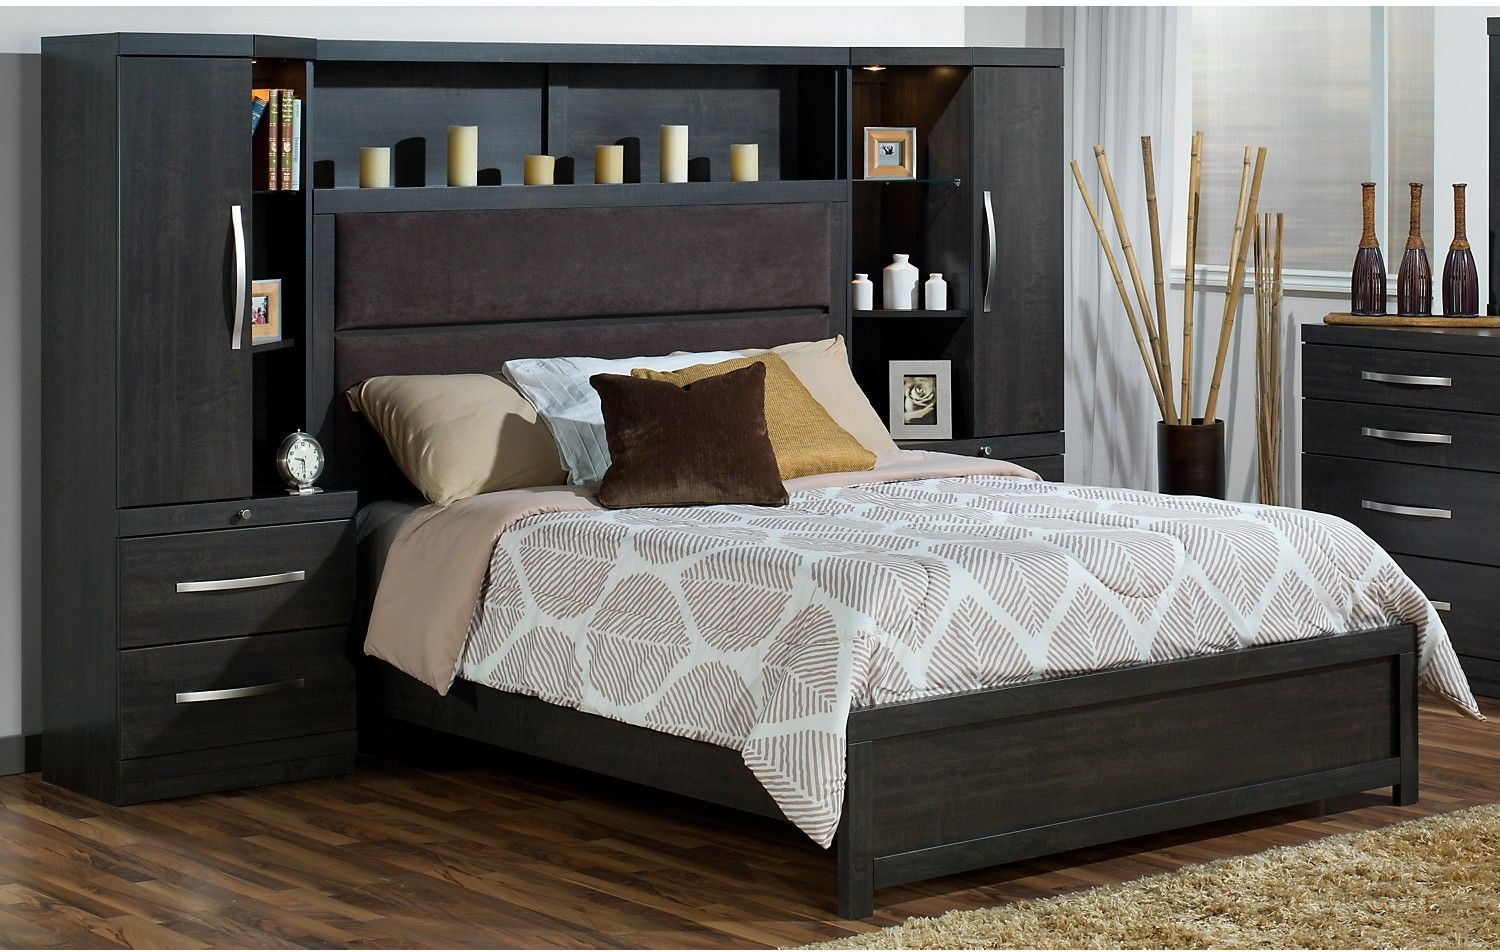 Pier Wall Bedroom Furniture Willowdale King Pier Bed The Brick Furniture And Bricks